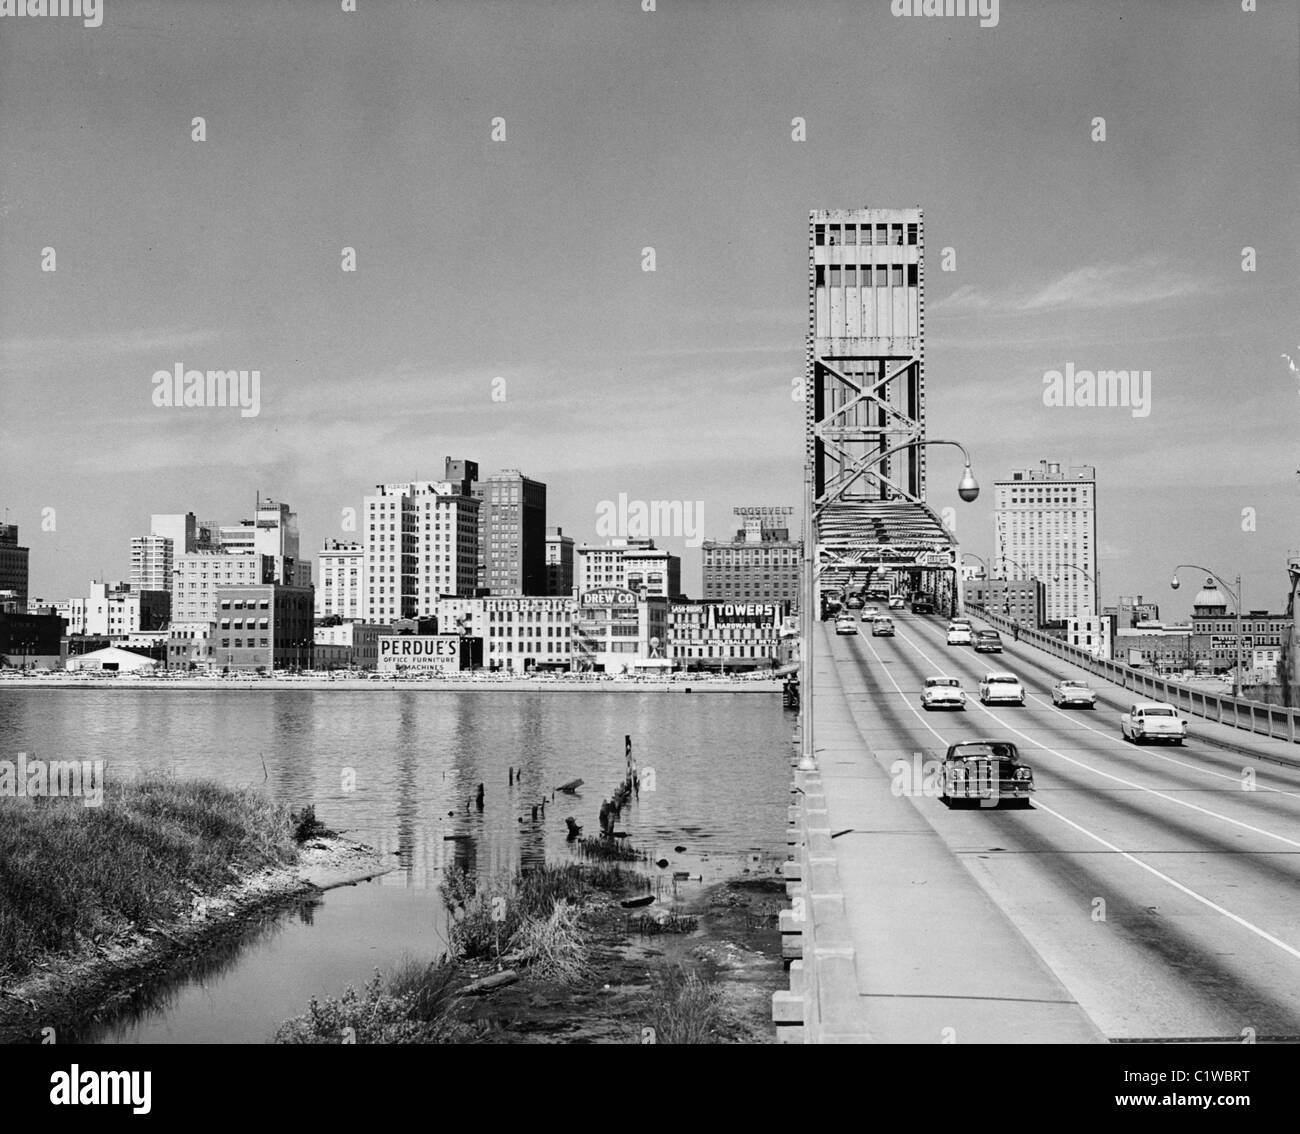 Voitures sur un pont cantilever, Main Street Bridge, Saint John's River, Jacksonville, Florida, USA Photo Stock